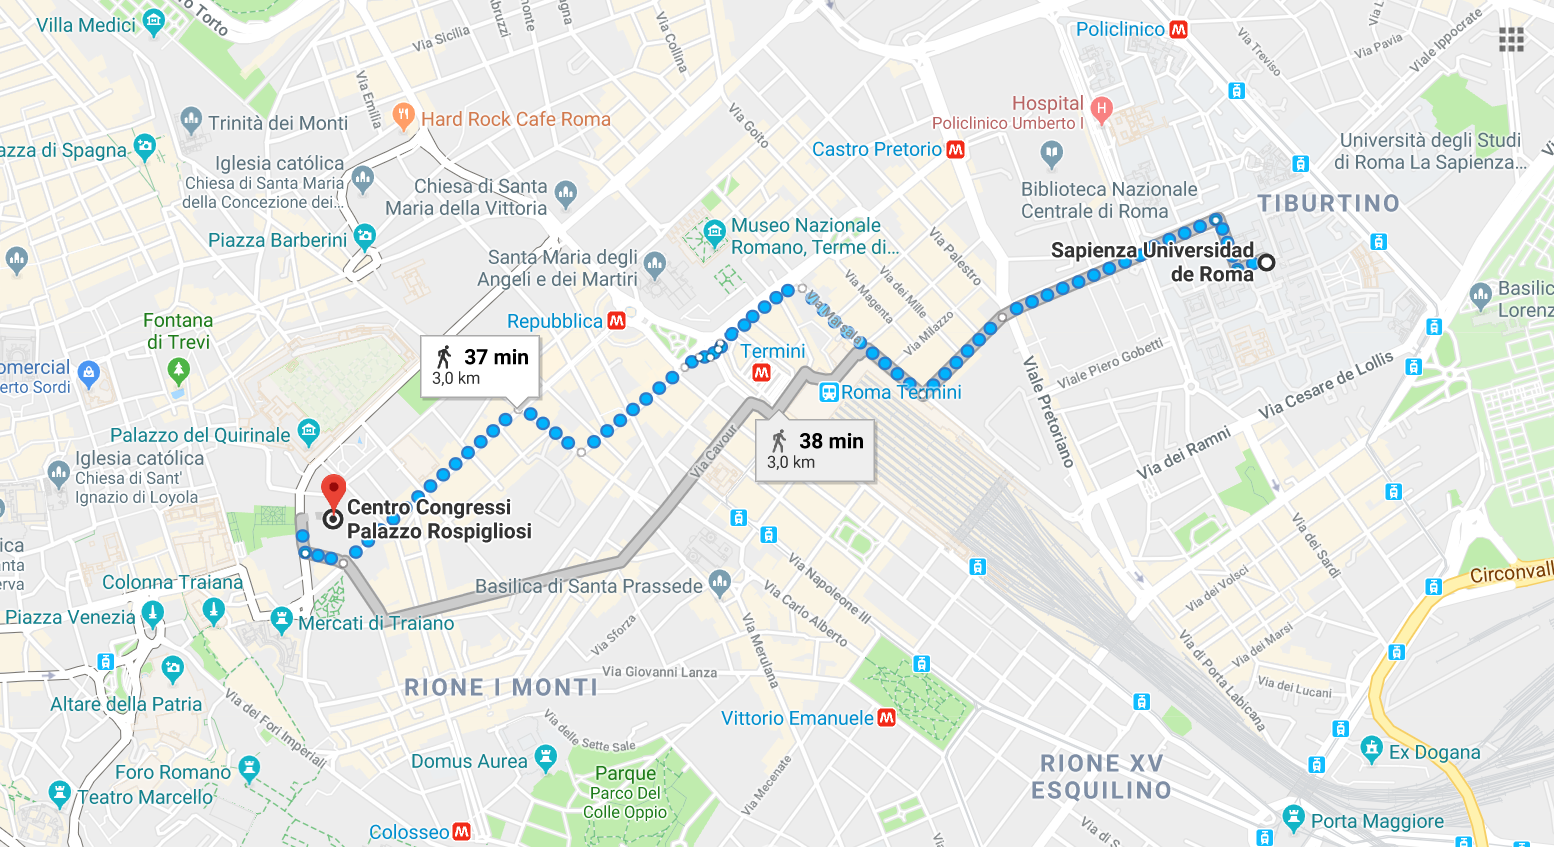 Route from UNIROMA University to the place of dinner